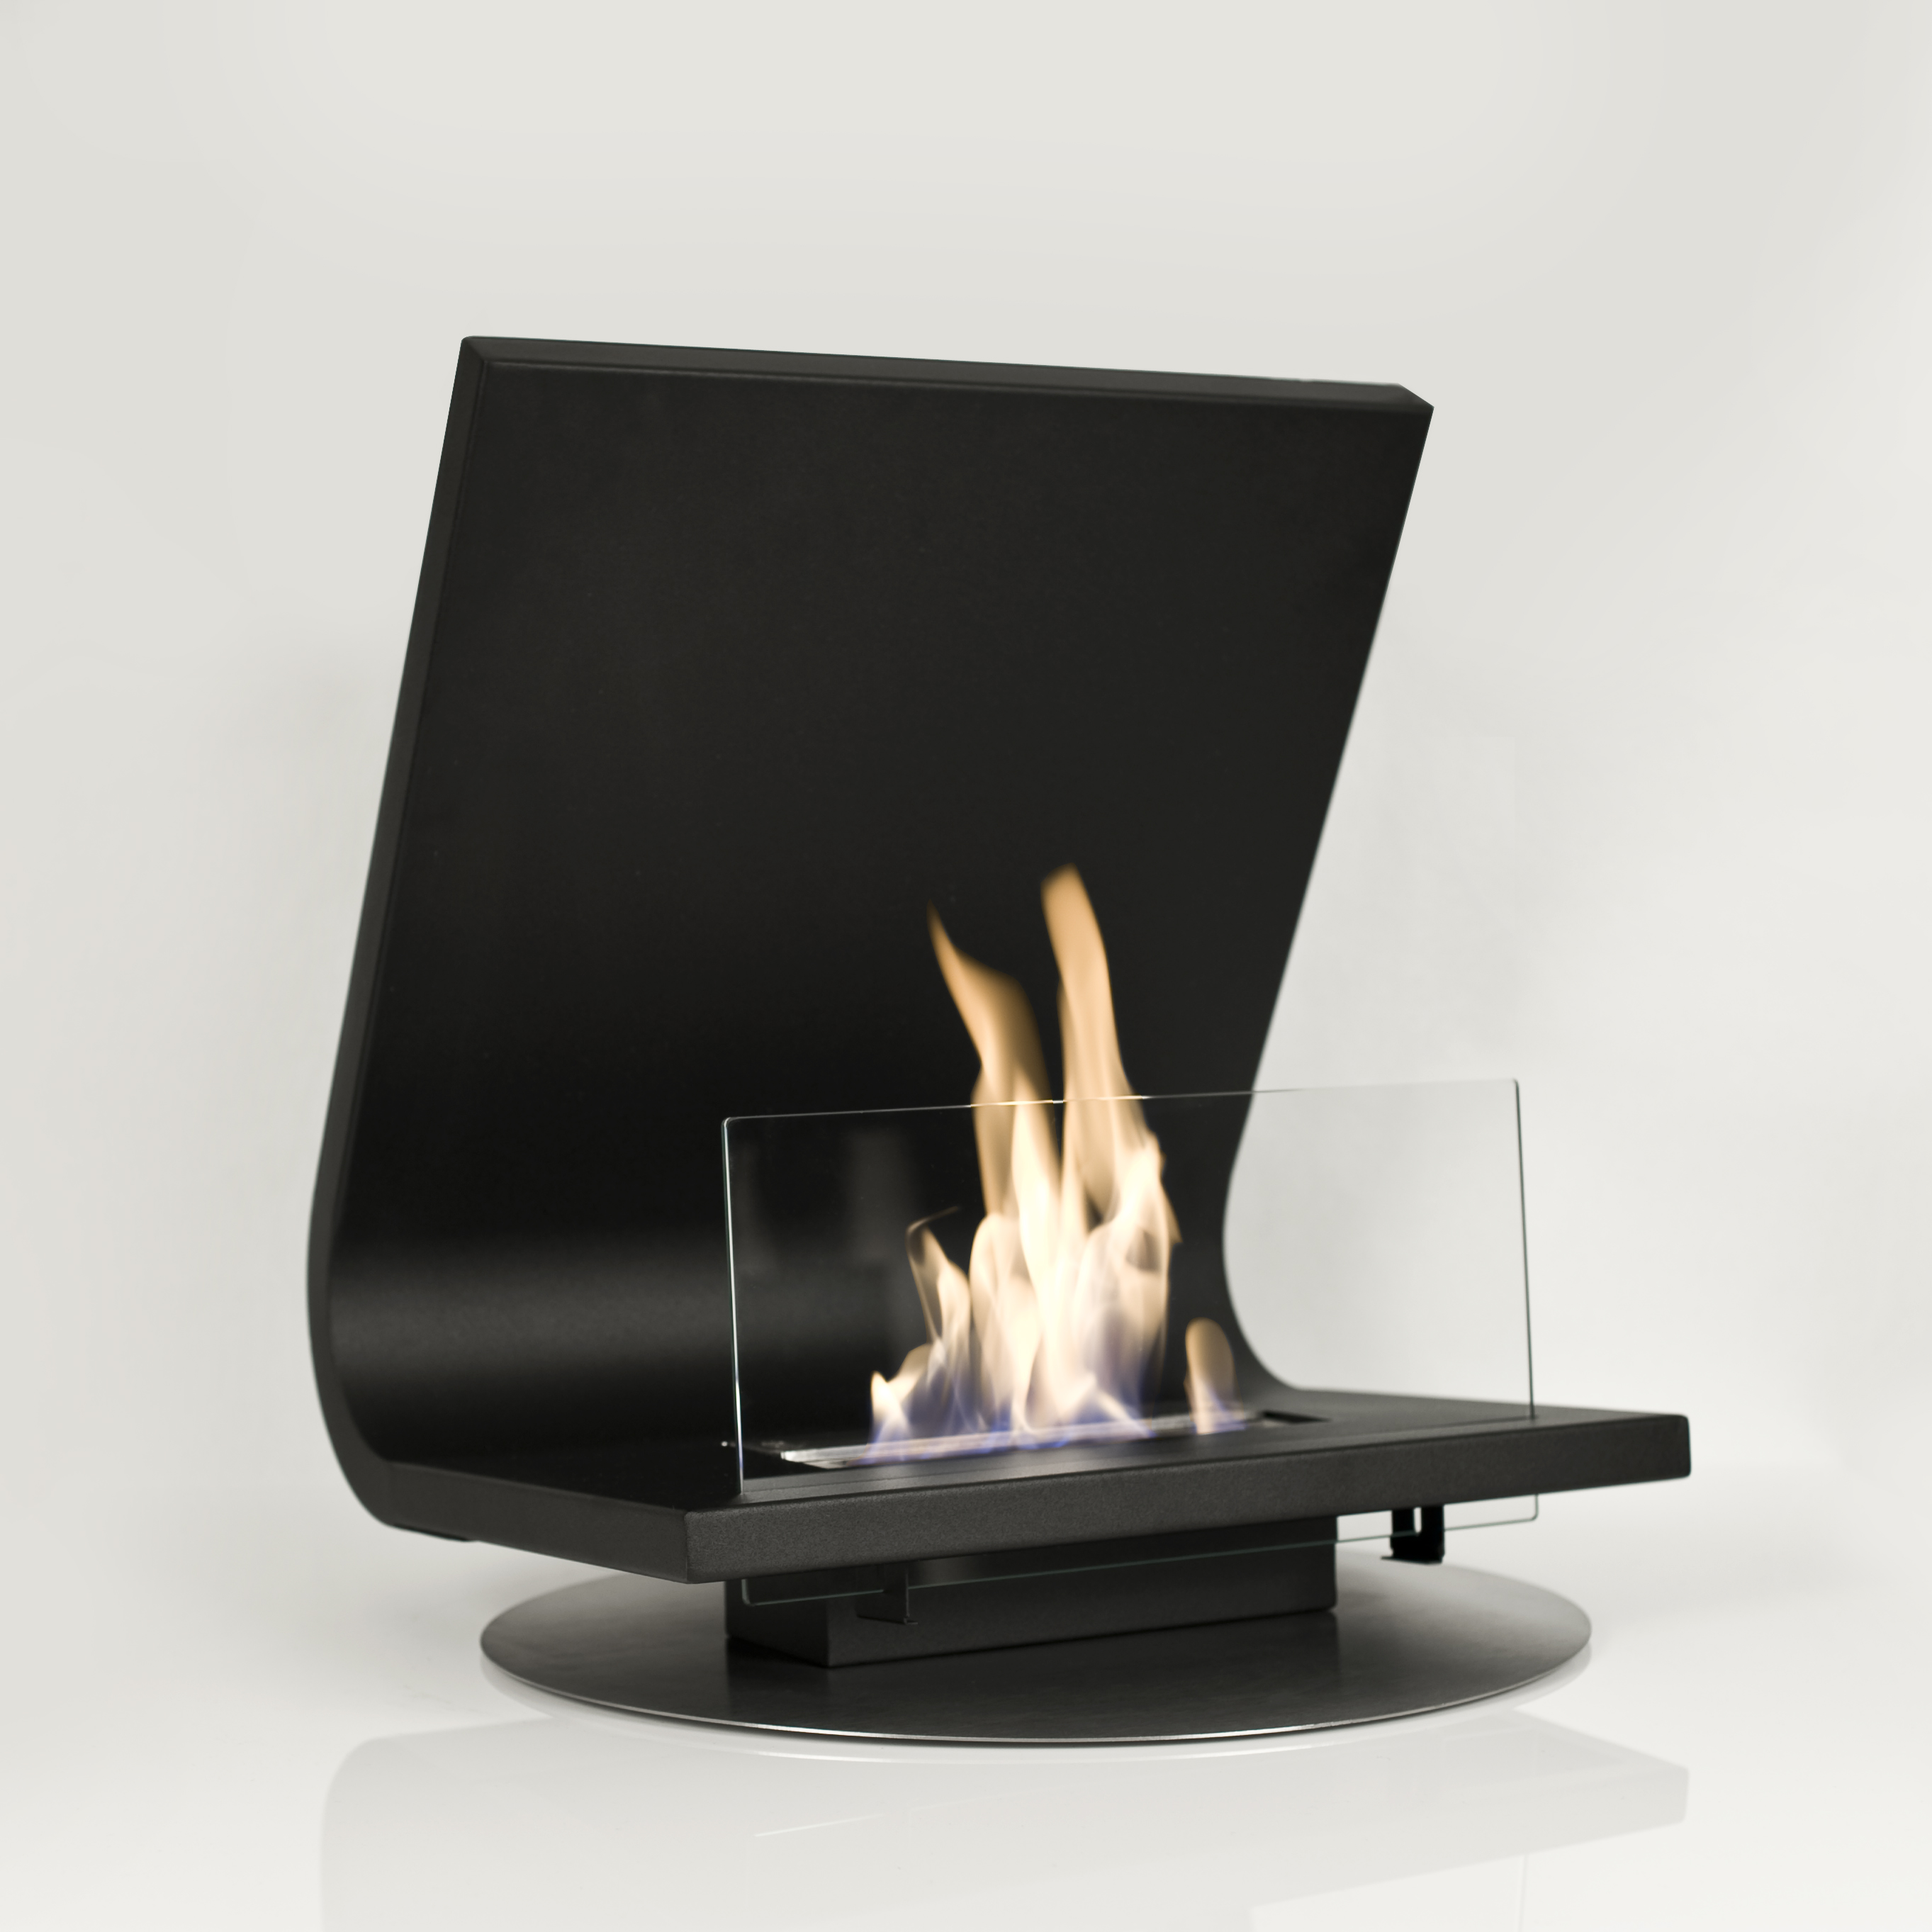 mounted from b fire front fl ventless ethanol en architonic fireplace wall ecosmart by product fires firebox